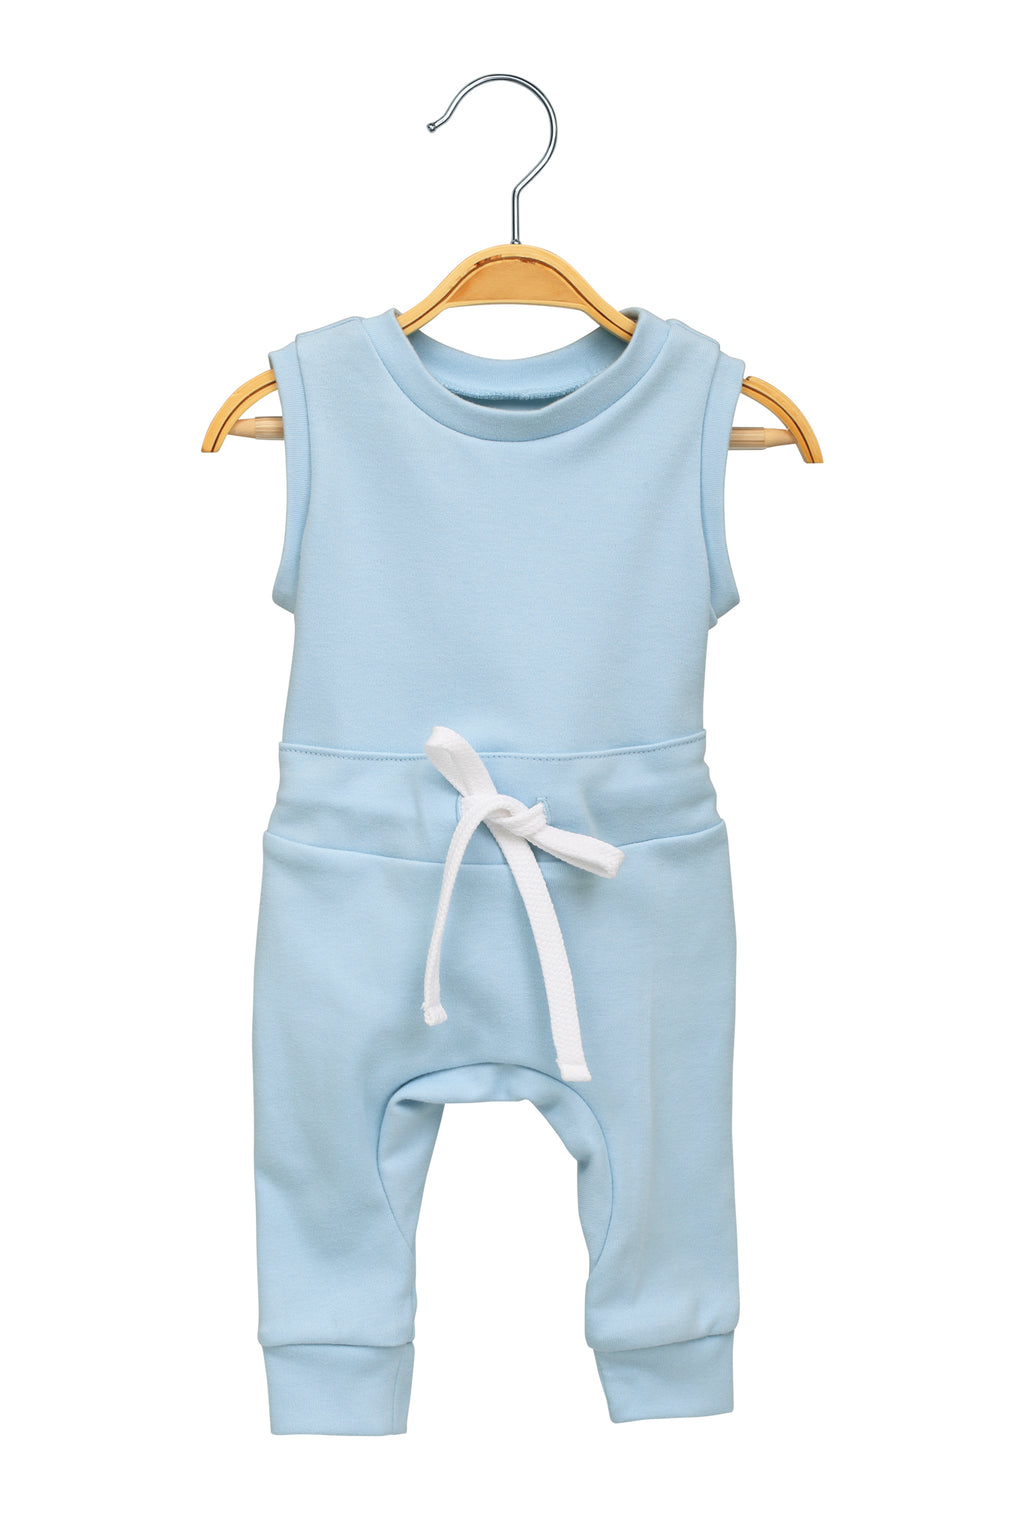 Brave Romper - 100% Cotton